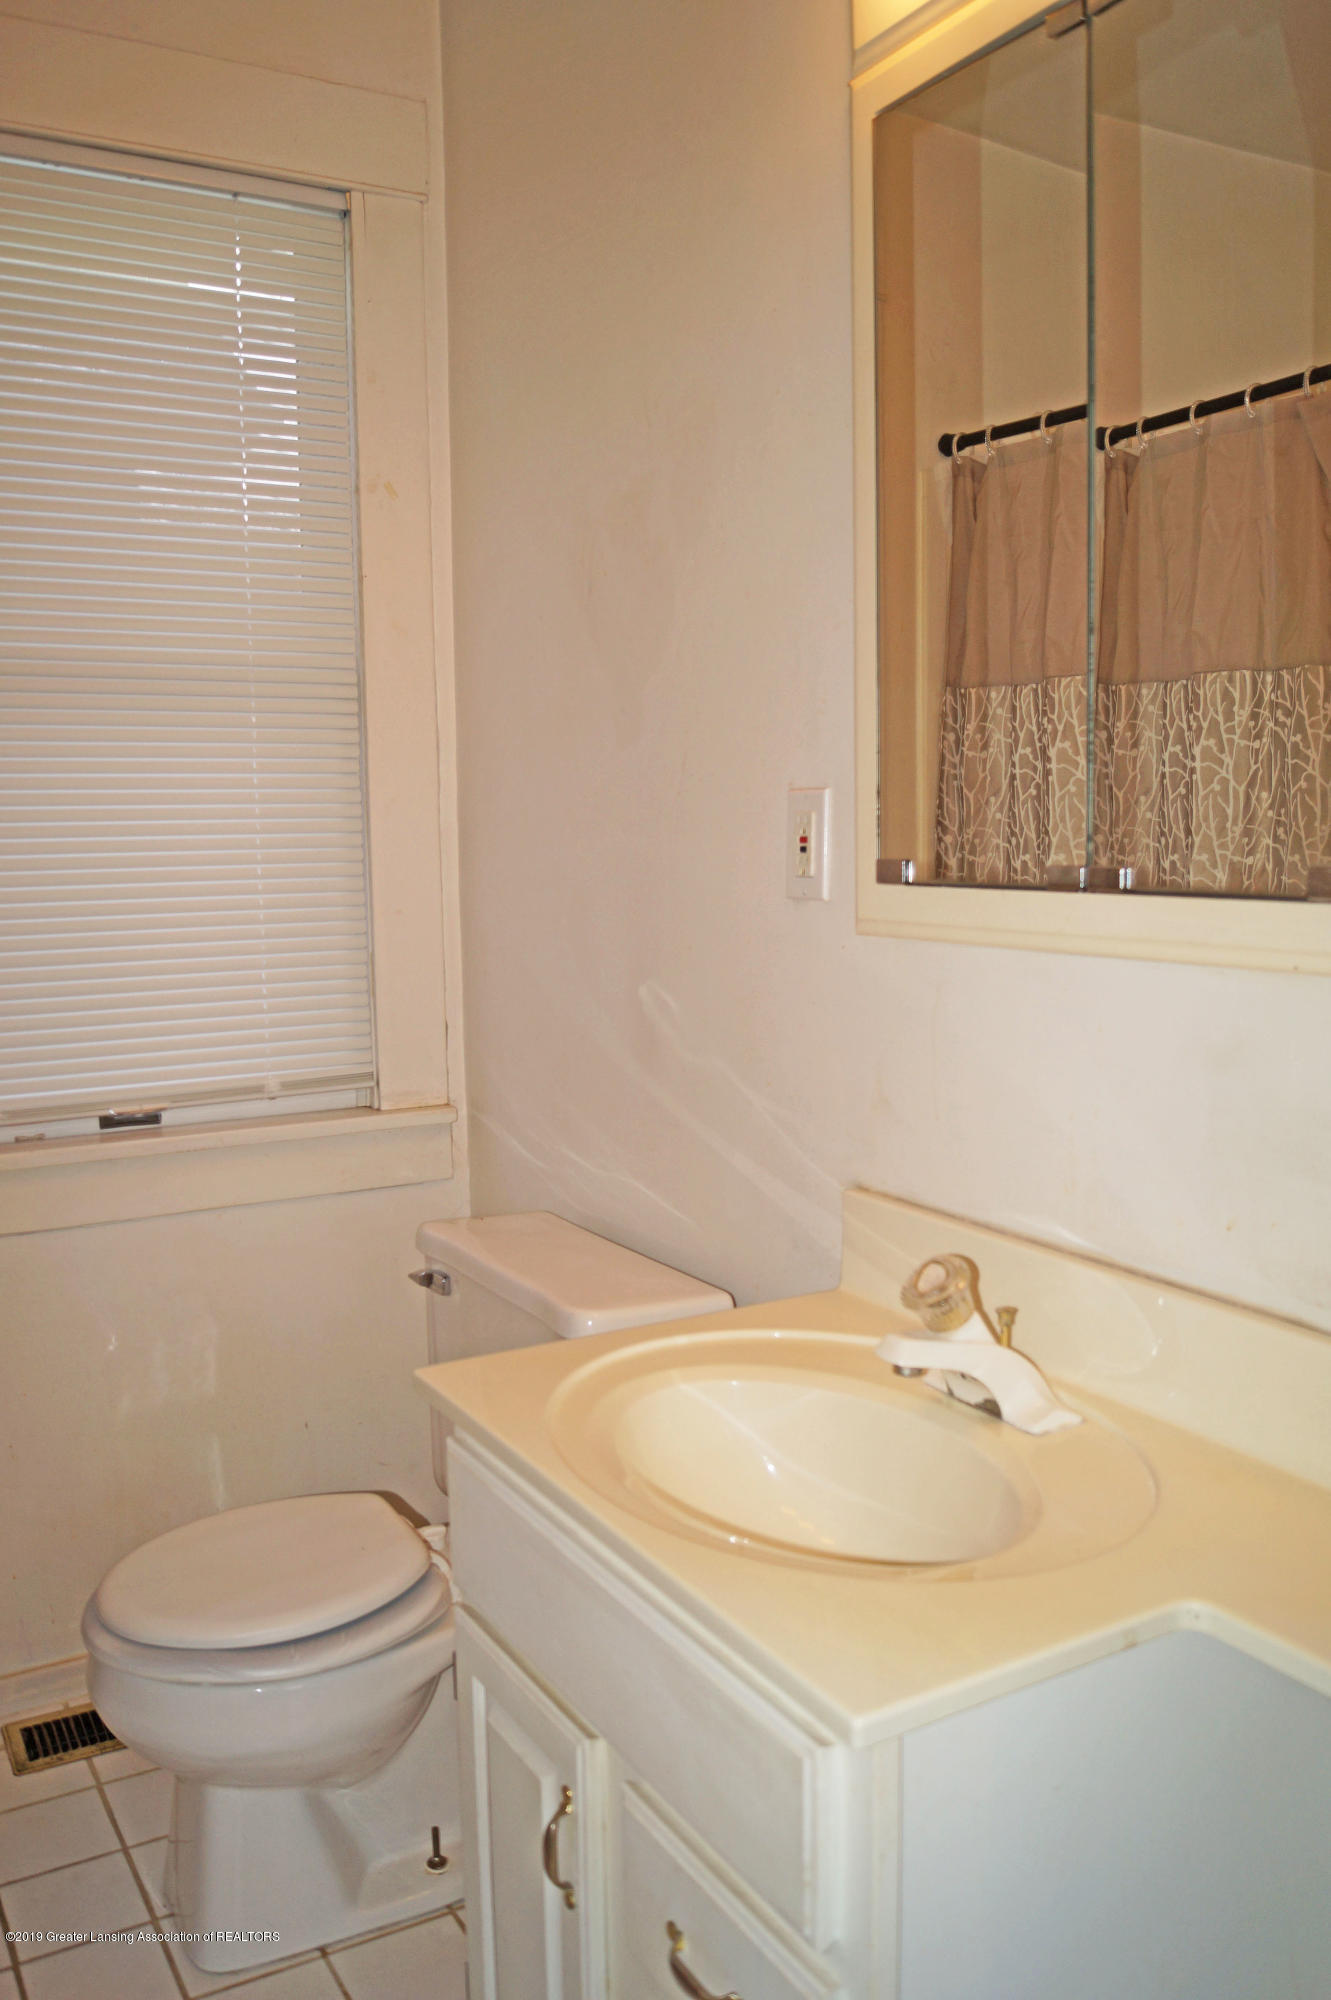 2463 S Rundle Ave - Bathroom - 11